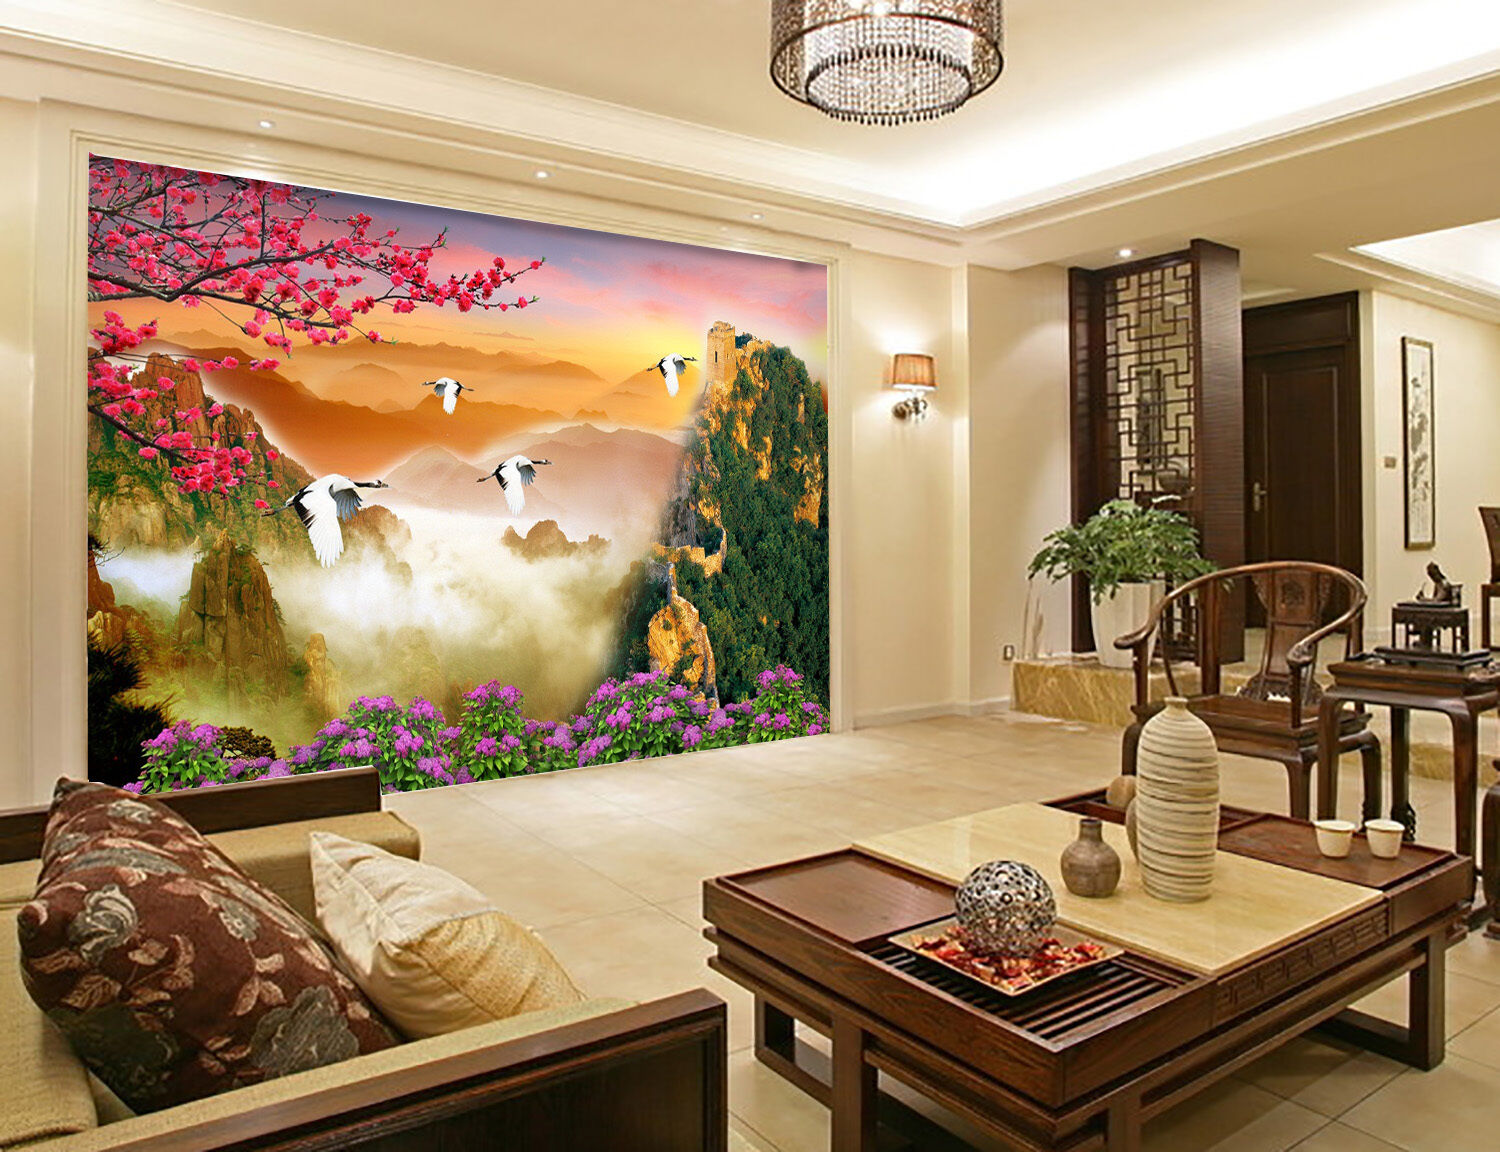 3D Mountains bird Squid Wall Paper Print Decal Wall Deco Indoor wall Mural